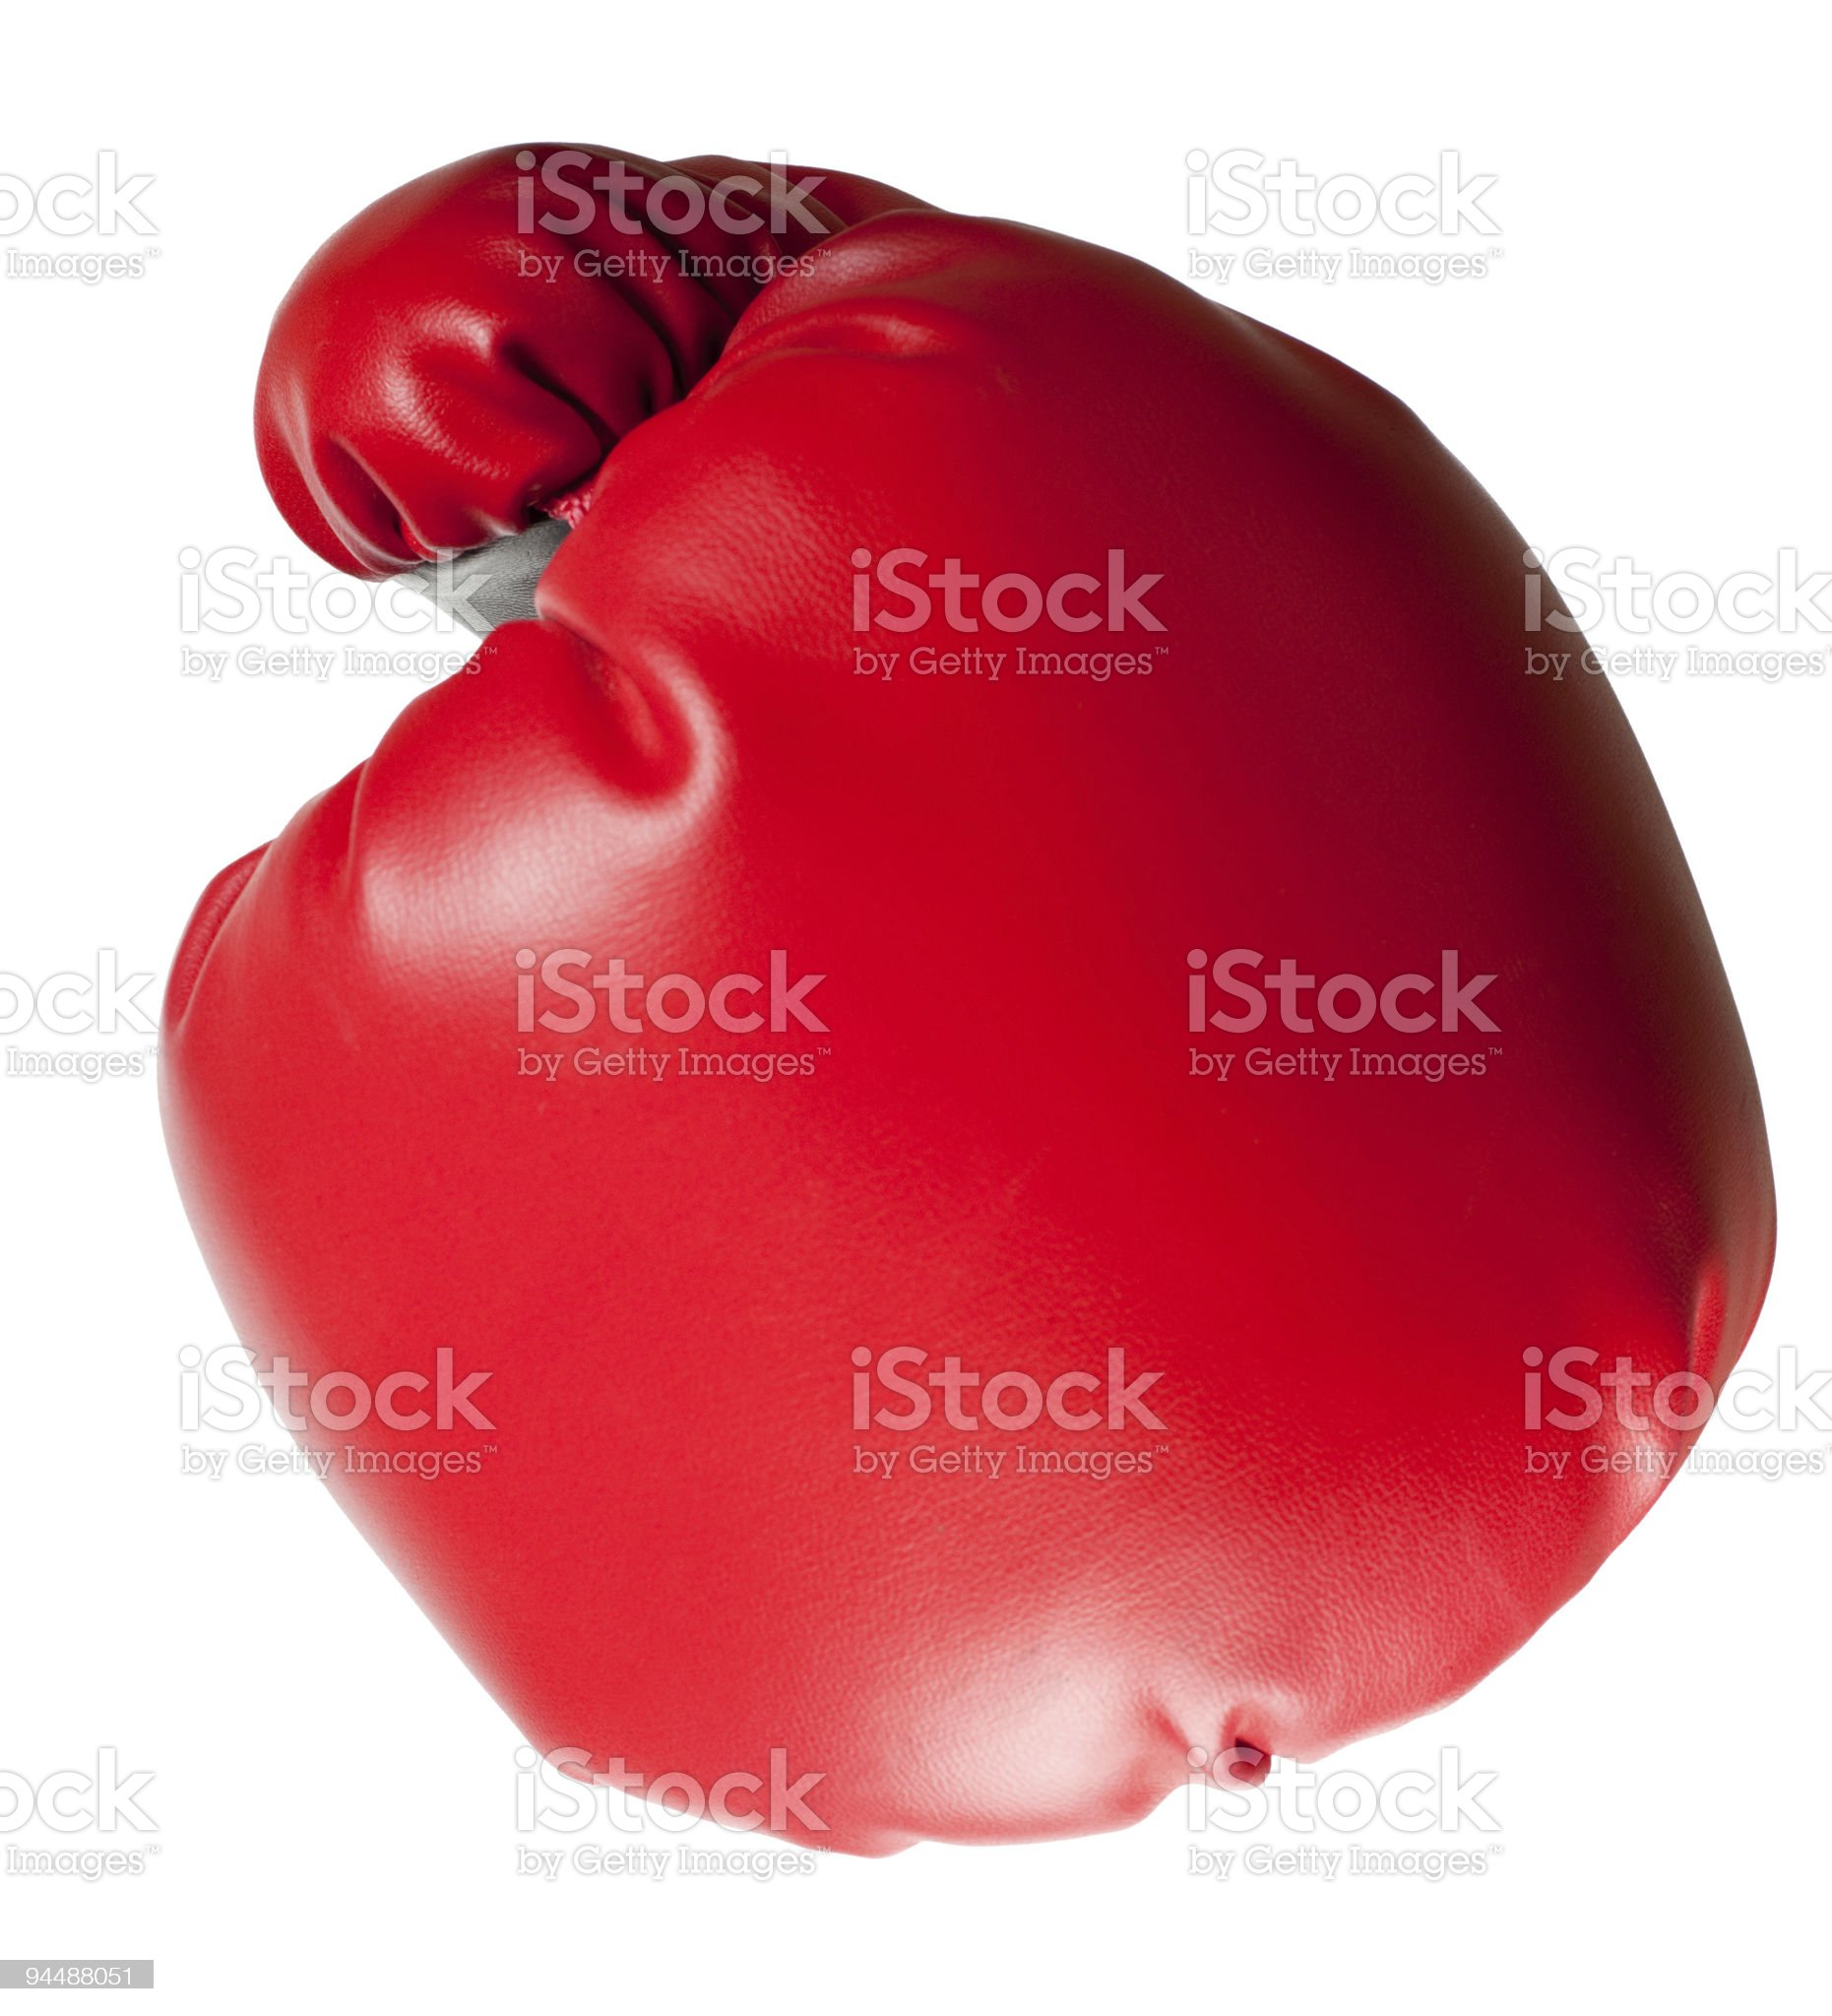 Red boxing glove aimed towards viewer royalty-free stock photo